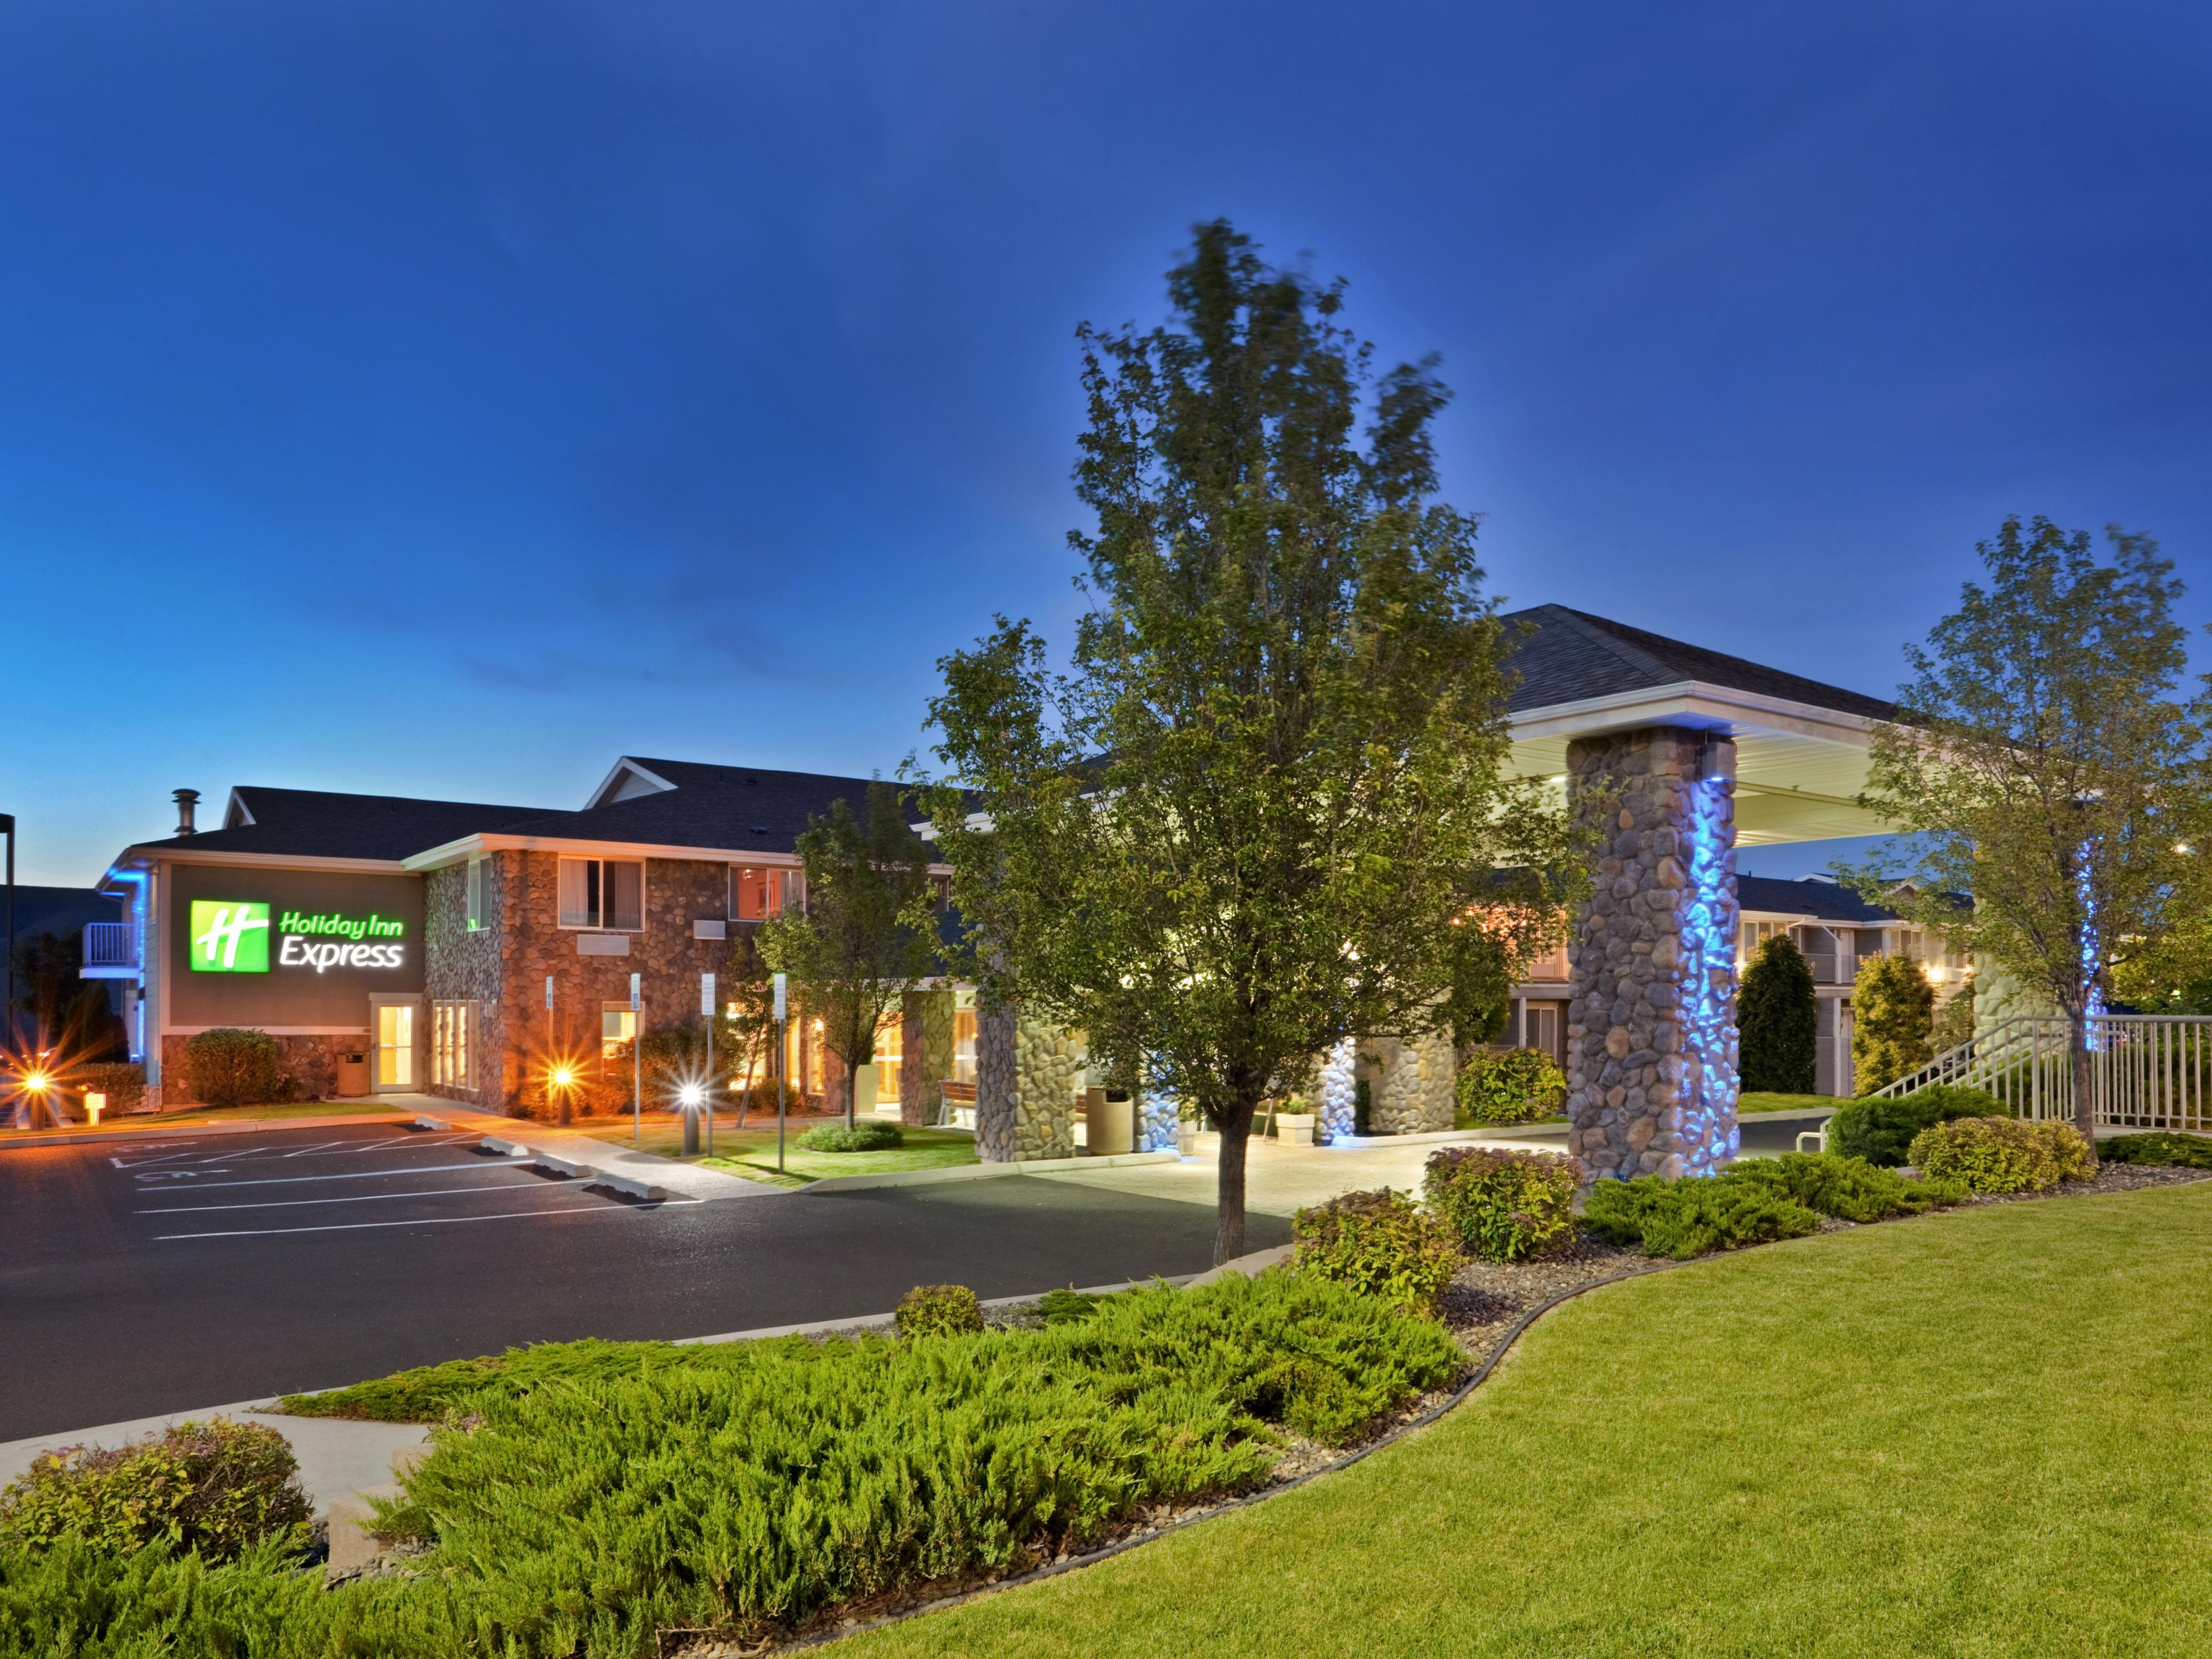 Welcome to the Holiday Inn ExpressHotel Lewiston!